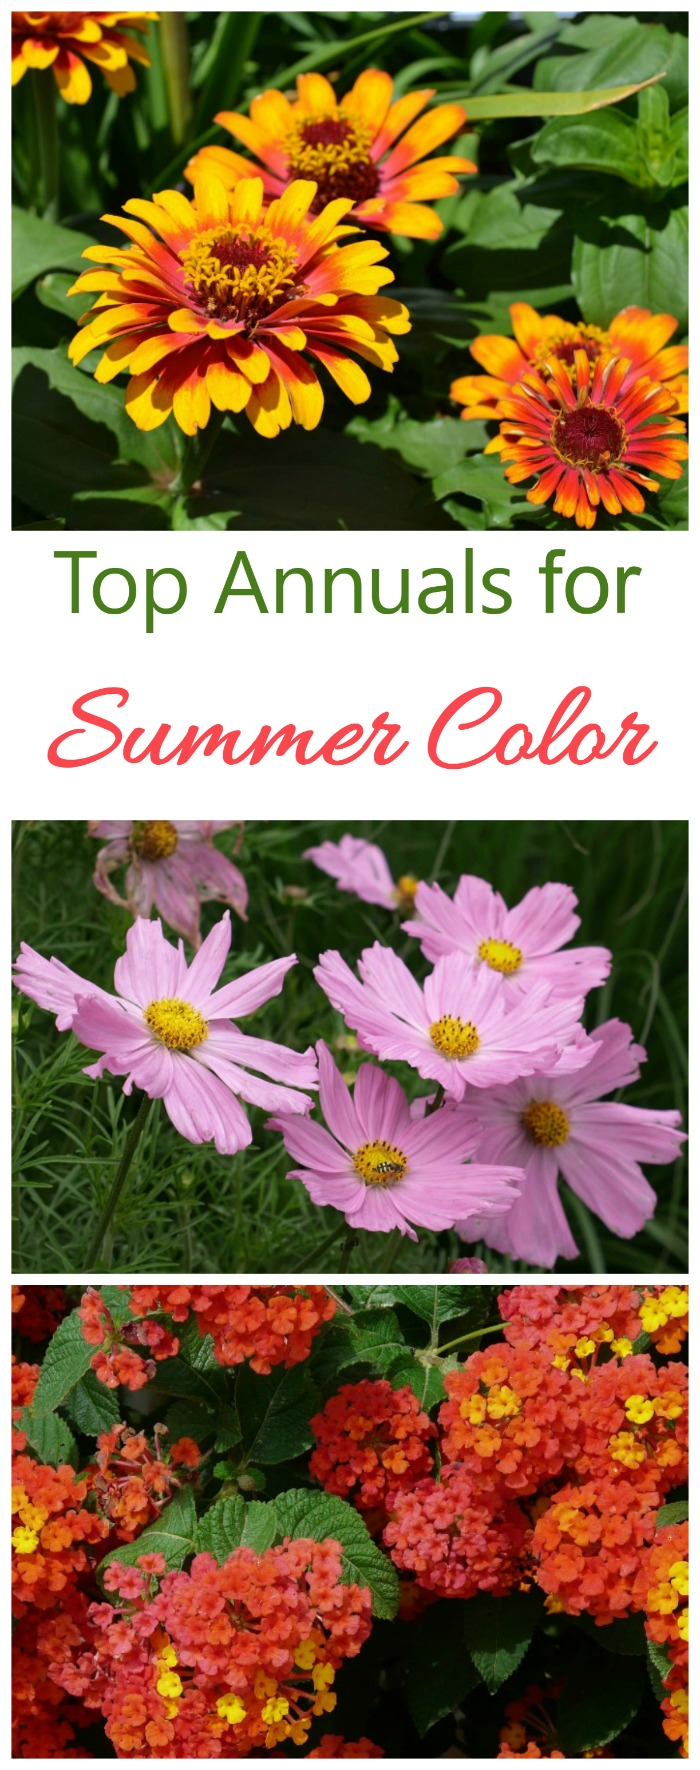 Grow these popular annuals for long lasting summer color